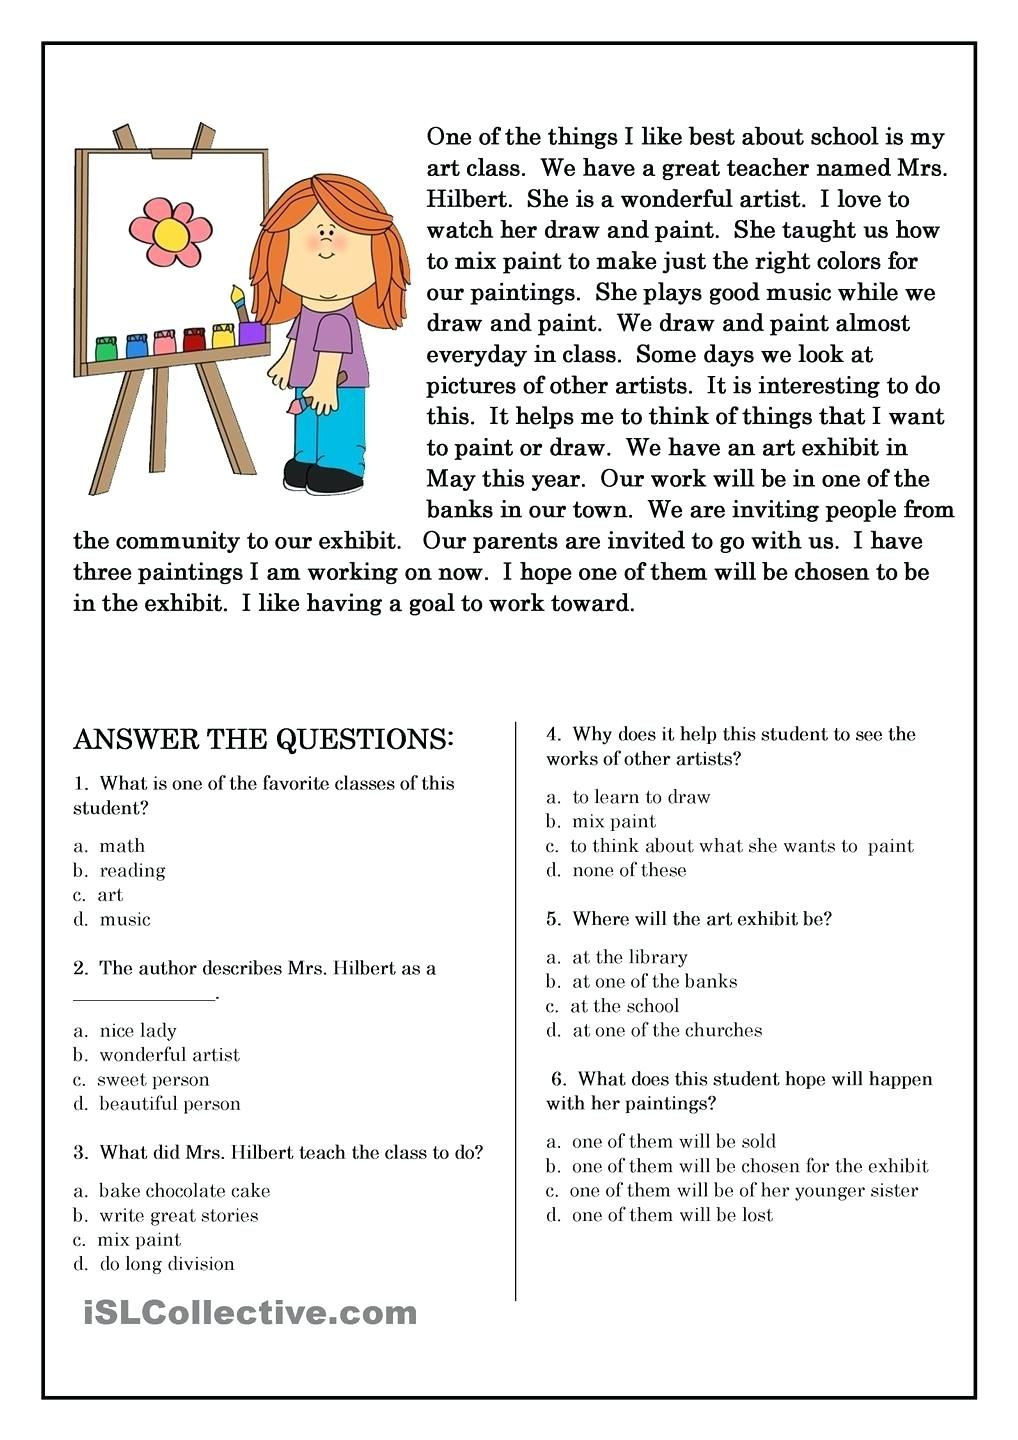 Reading Worksheets Grade 5 5 Elements A Short Story Worksheets Free Preschool